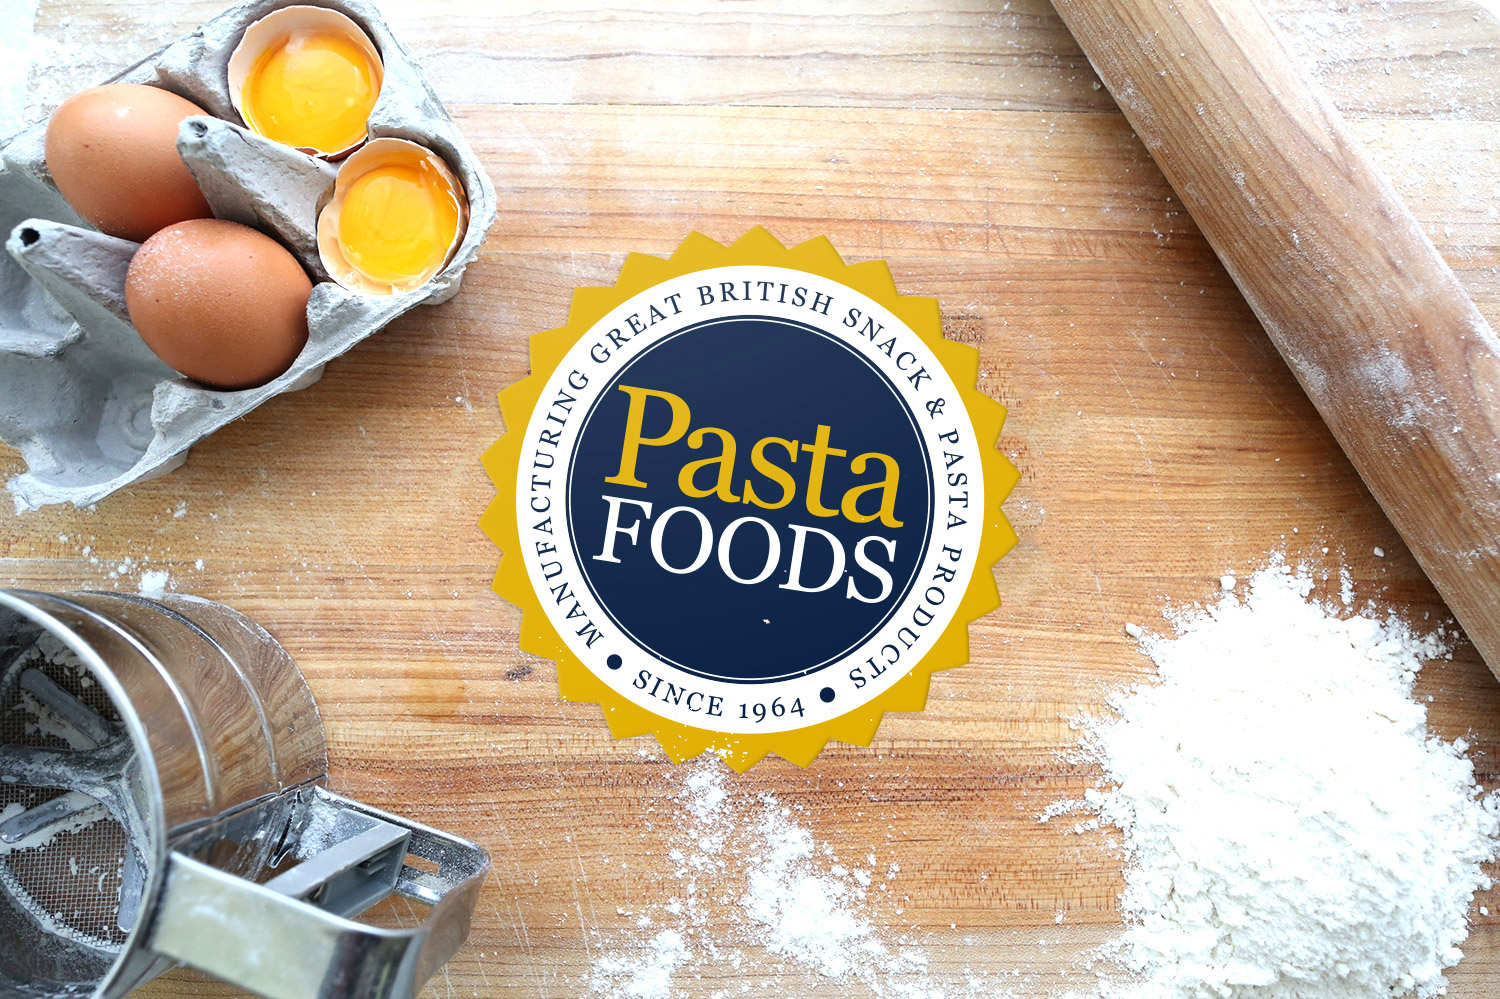 Pasta Foods logo on worktop